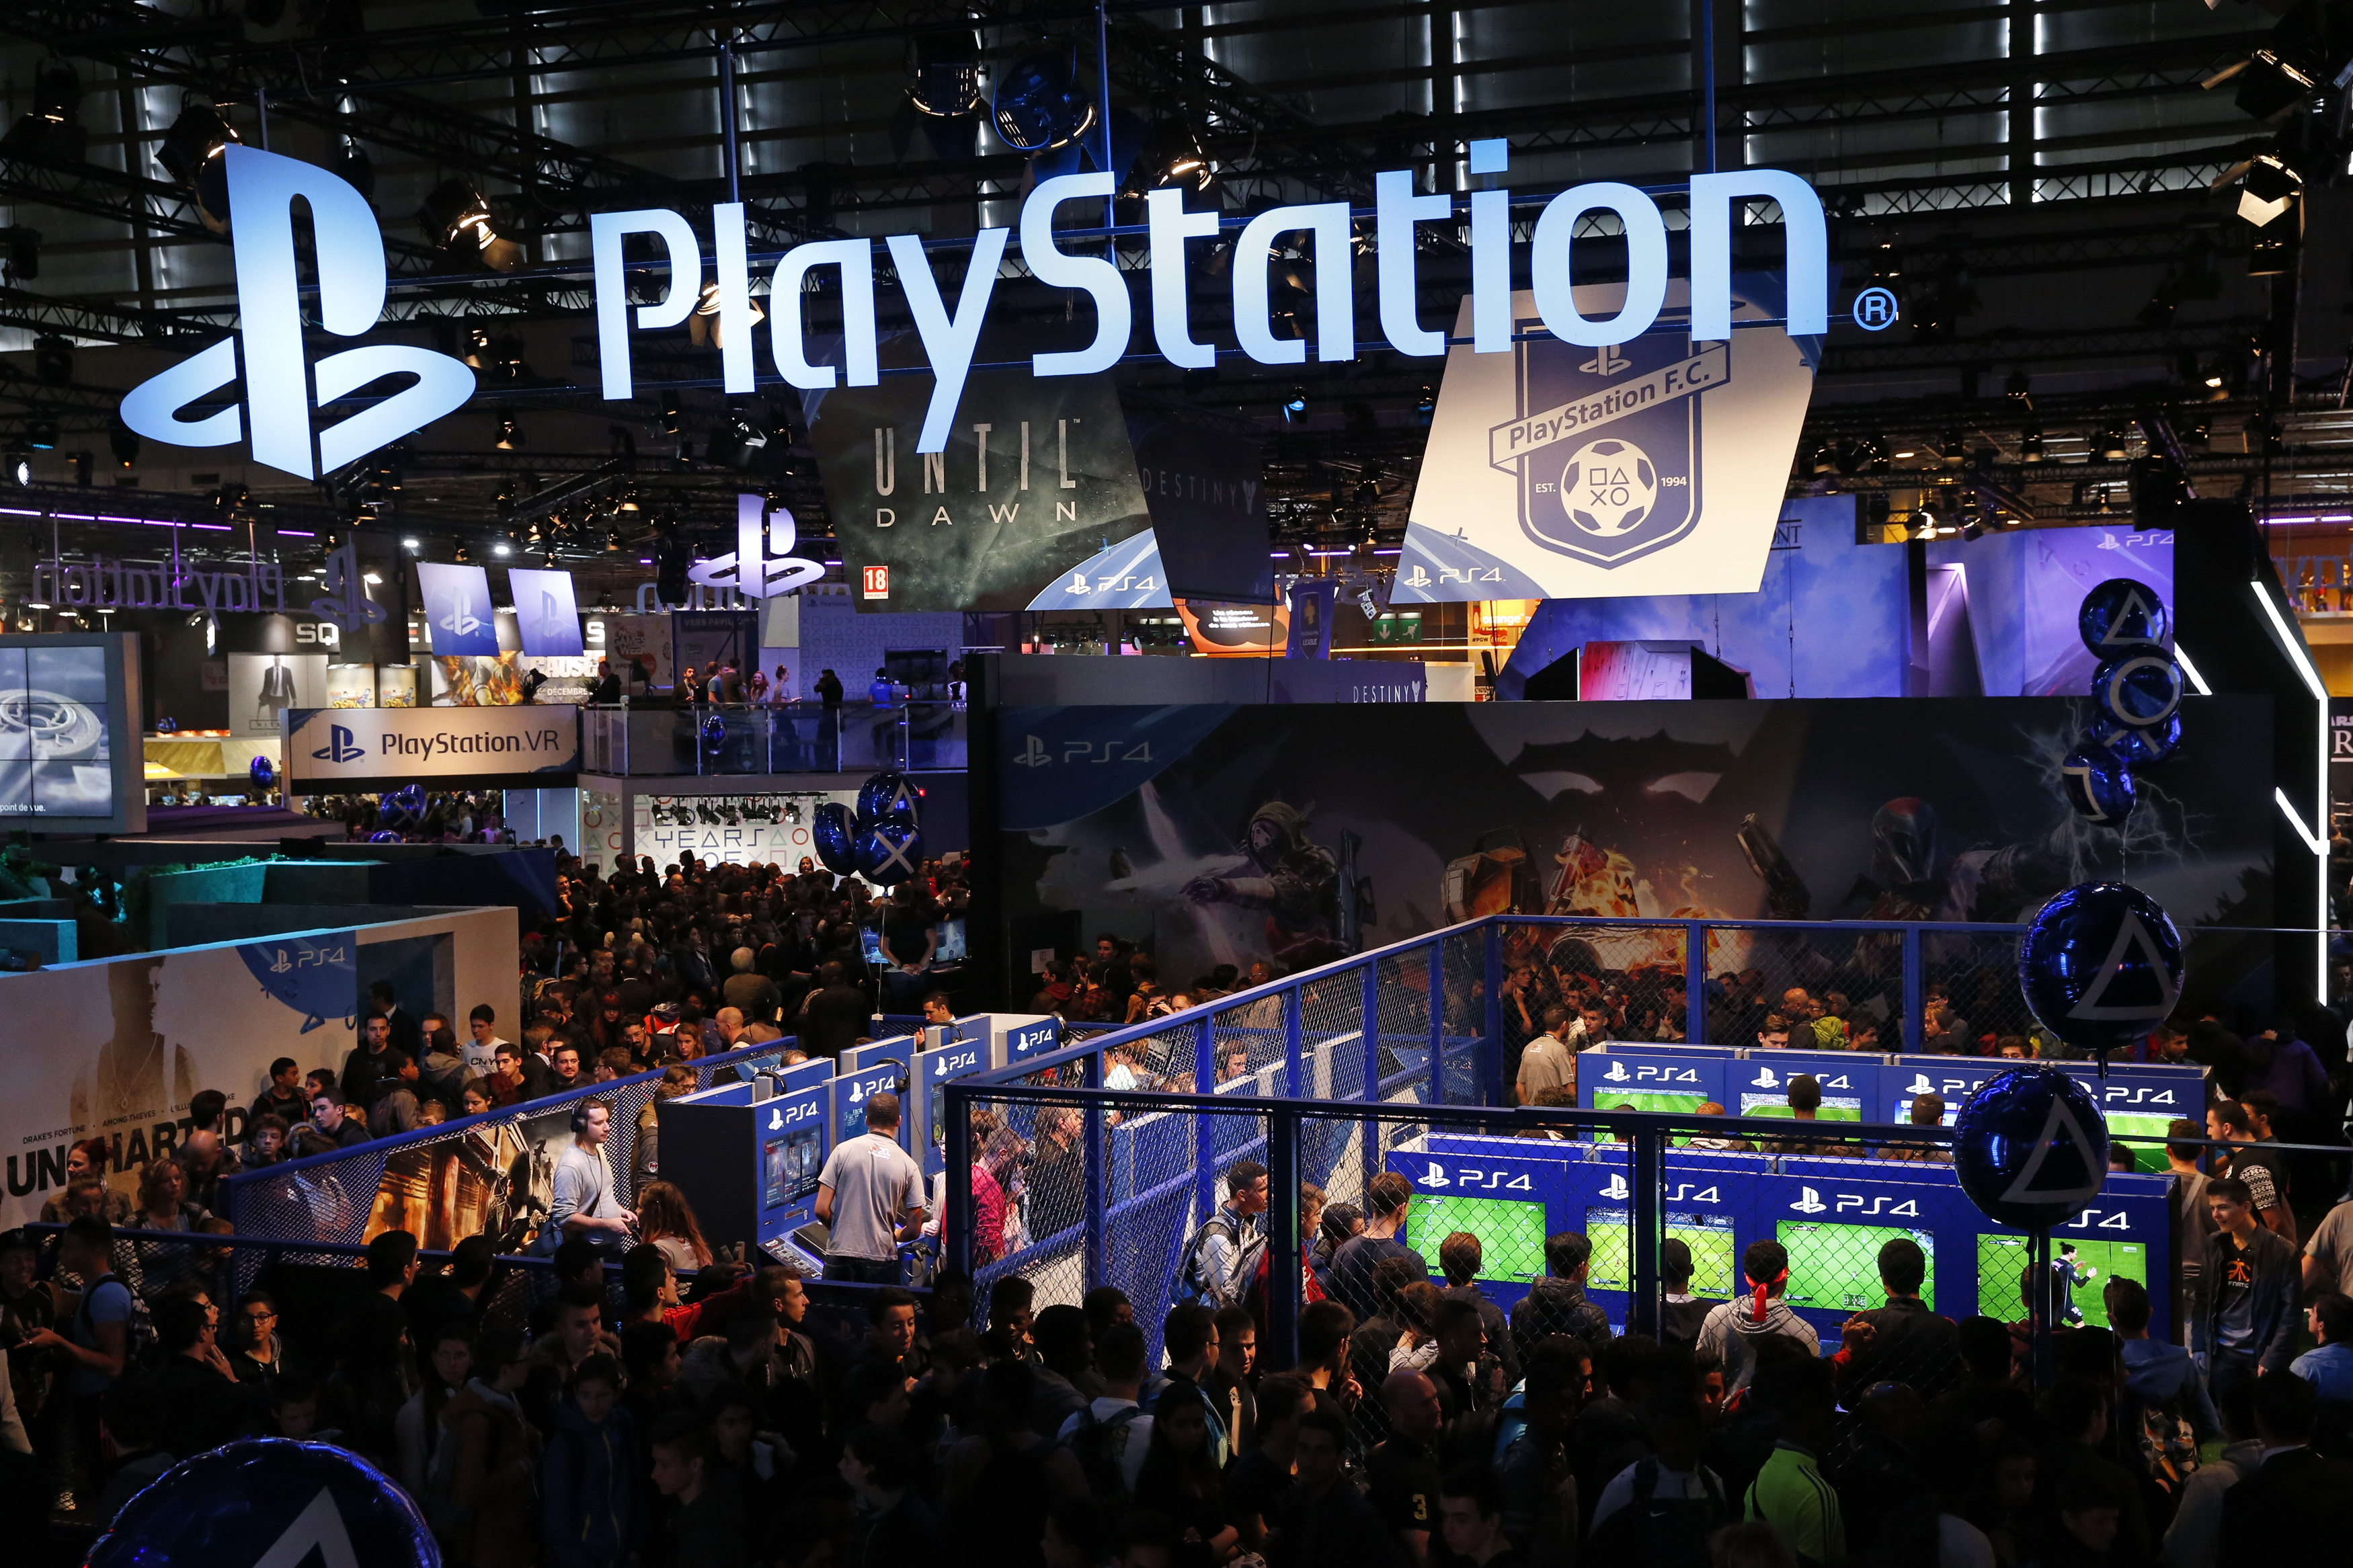 Visitors play games on PlayStation 4 (PS4) at the Paris Games Week, a trade fair for video games in Paris, France, October 28, 2015. Paris Games week will run from October 28 to November 1, 2015. REUTERS/Benoit Tessier